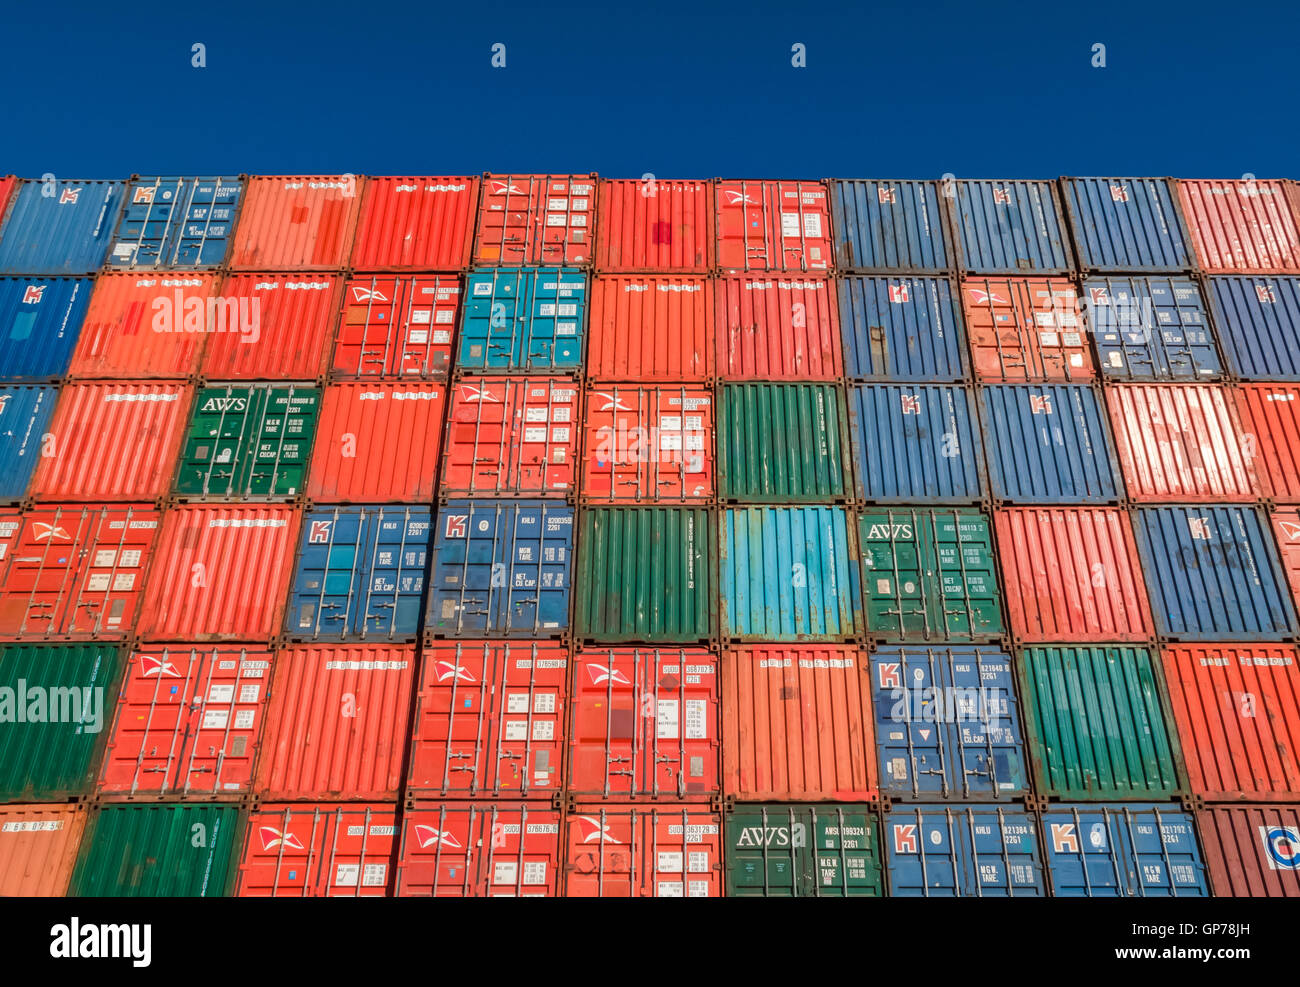 Shipping containers stacked high - Stock Image